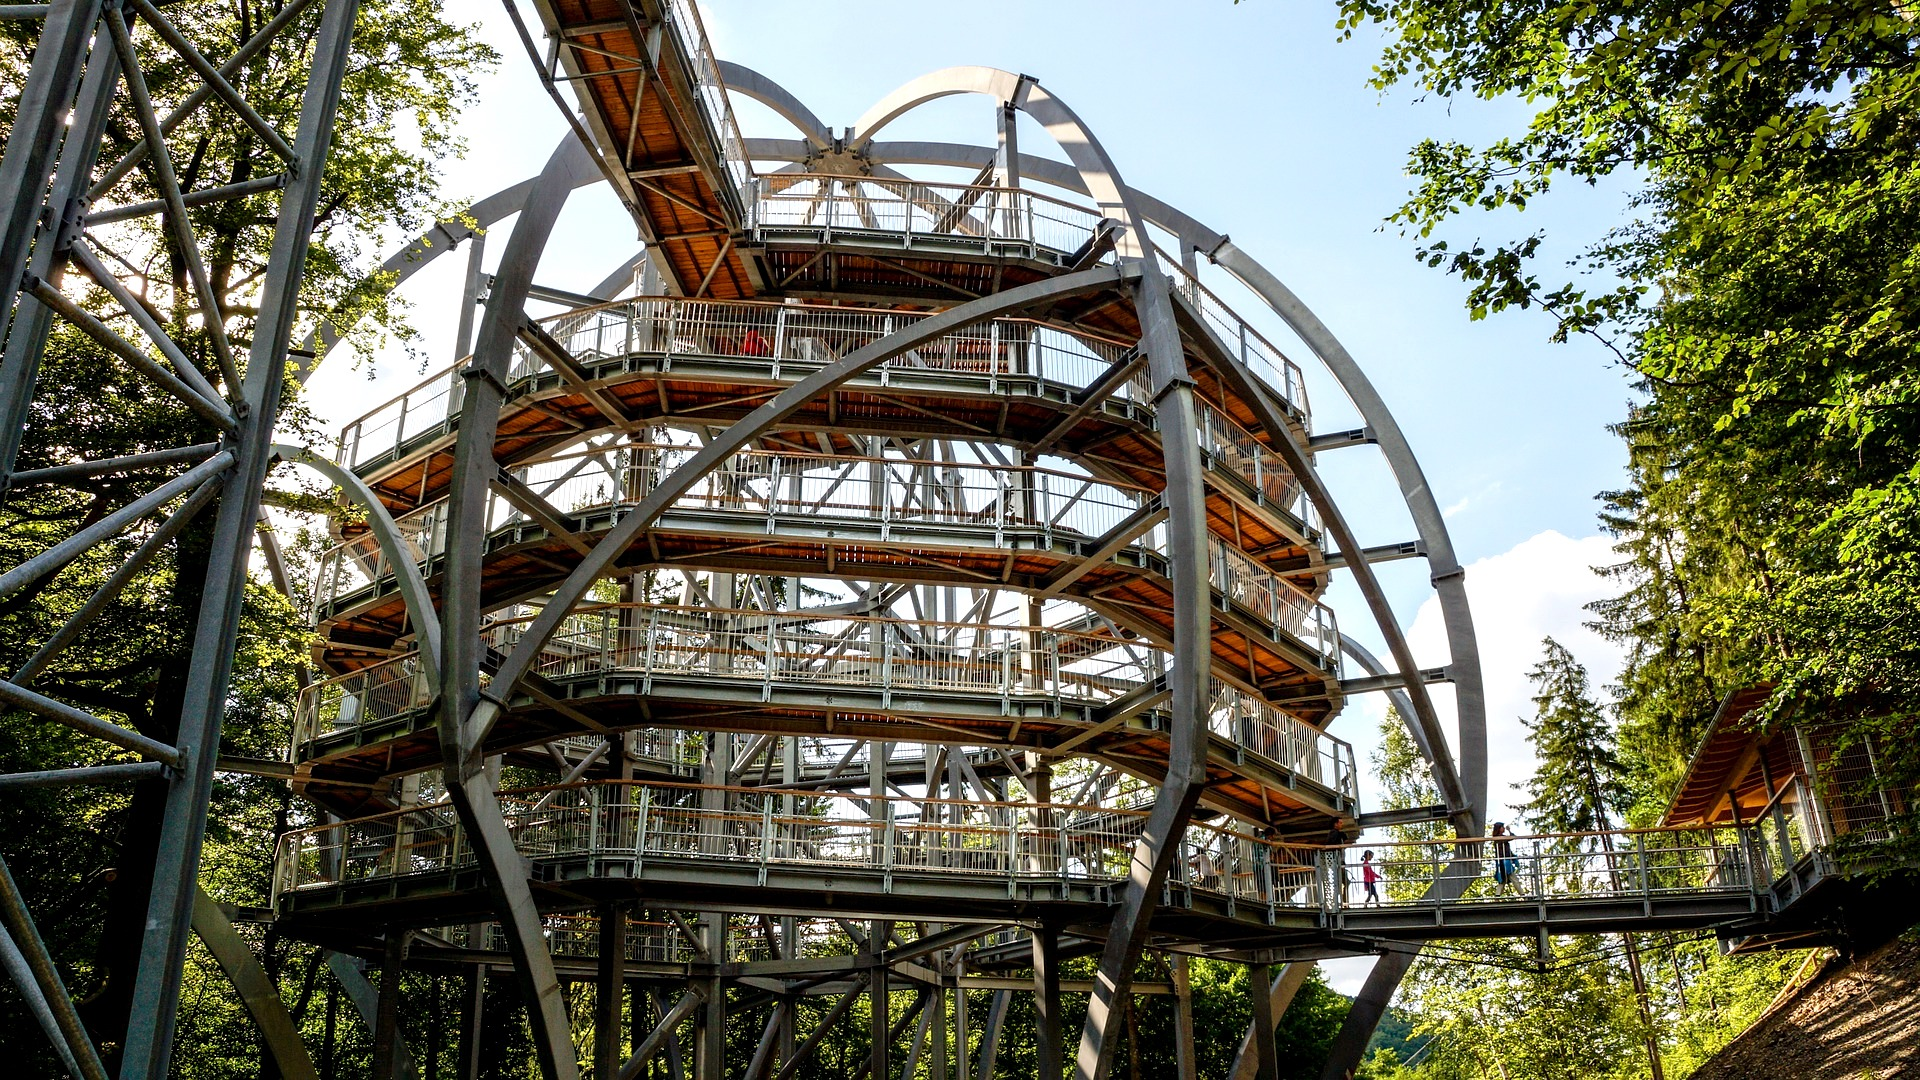 Treetop walkway lipno, nature, czech republic, outdoor activities, hidden spot, private tour, english speaking guide, trip